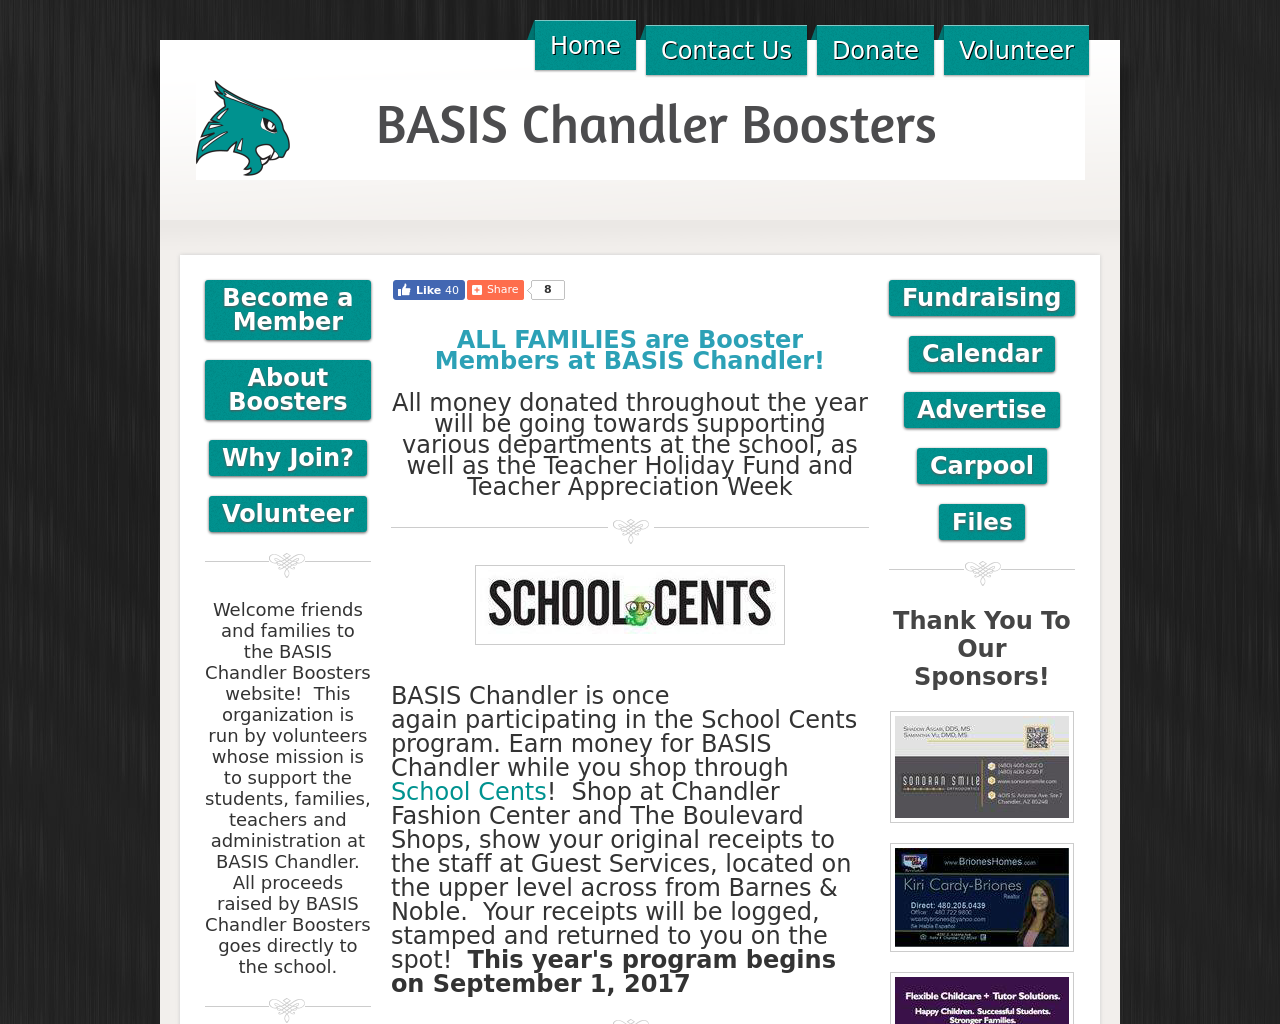 BASIS-Chandler-Boosters-Advertising-Reviews-Pricing